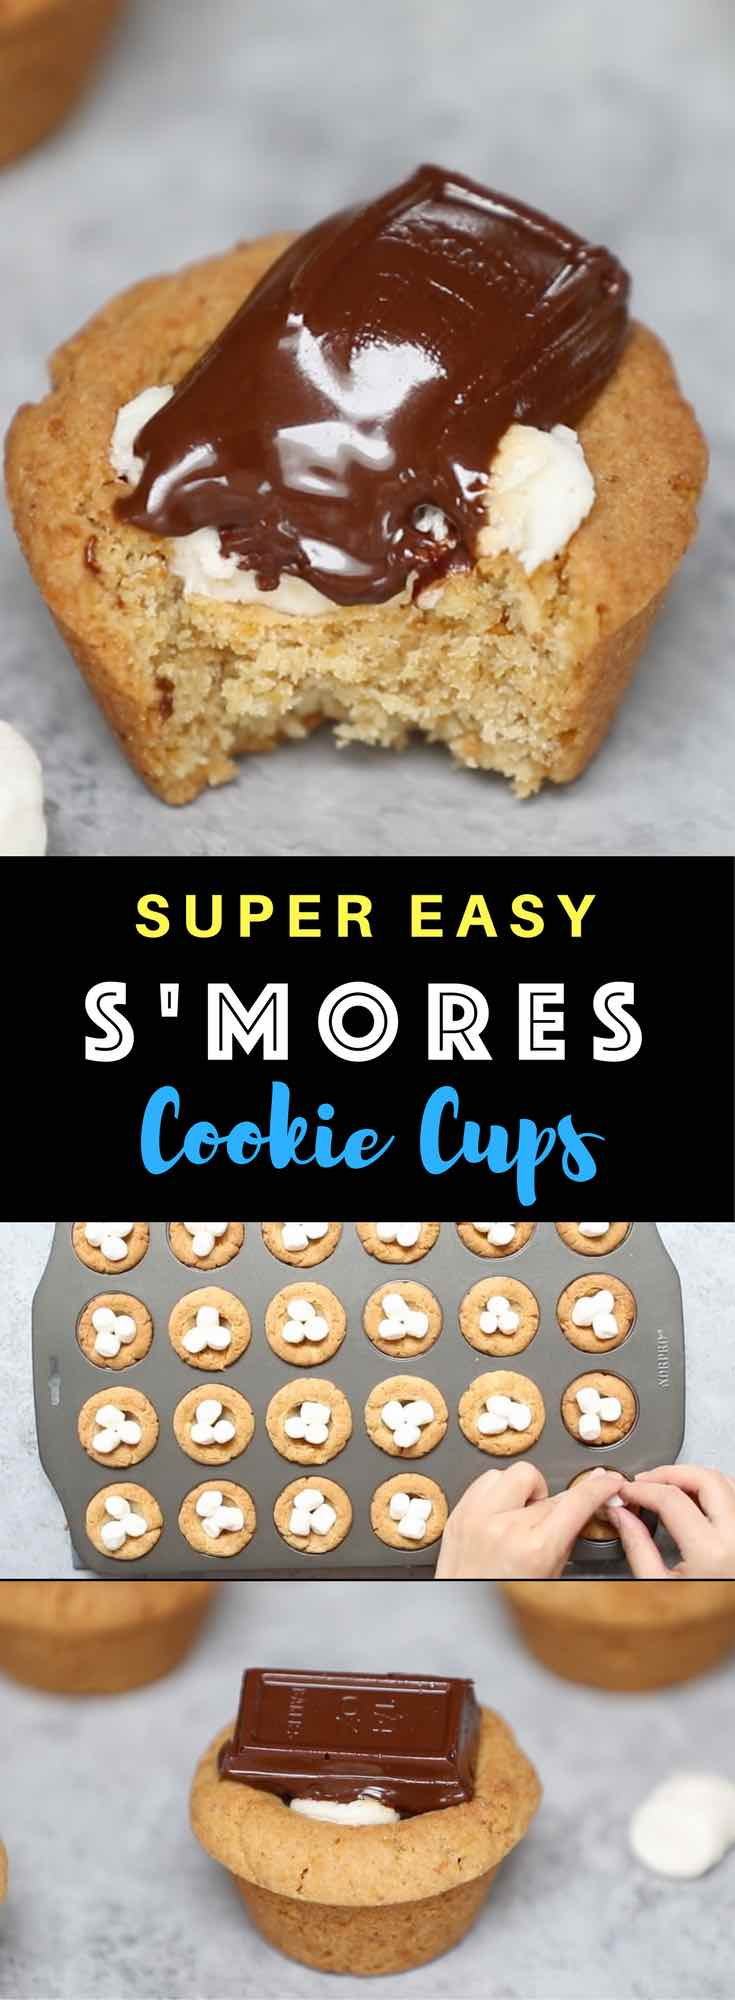 The Best S'mores Cookie Cups Recipe | TipBuzz